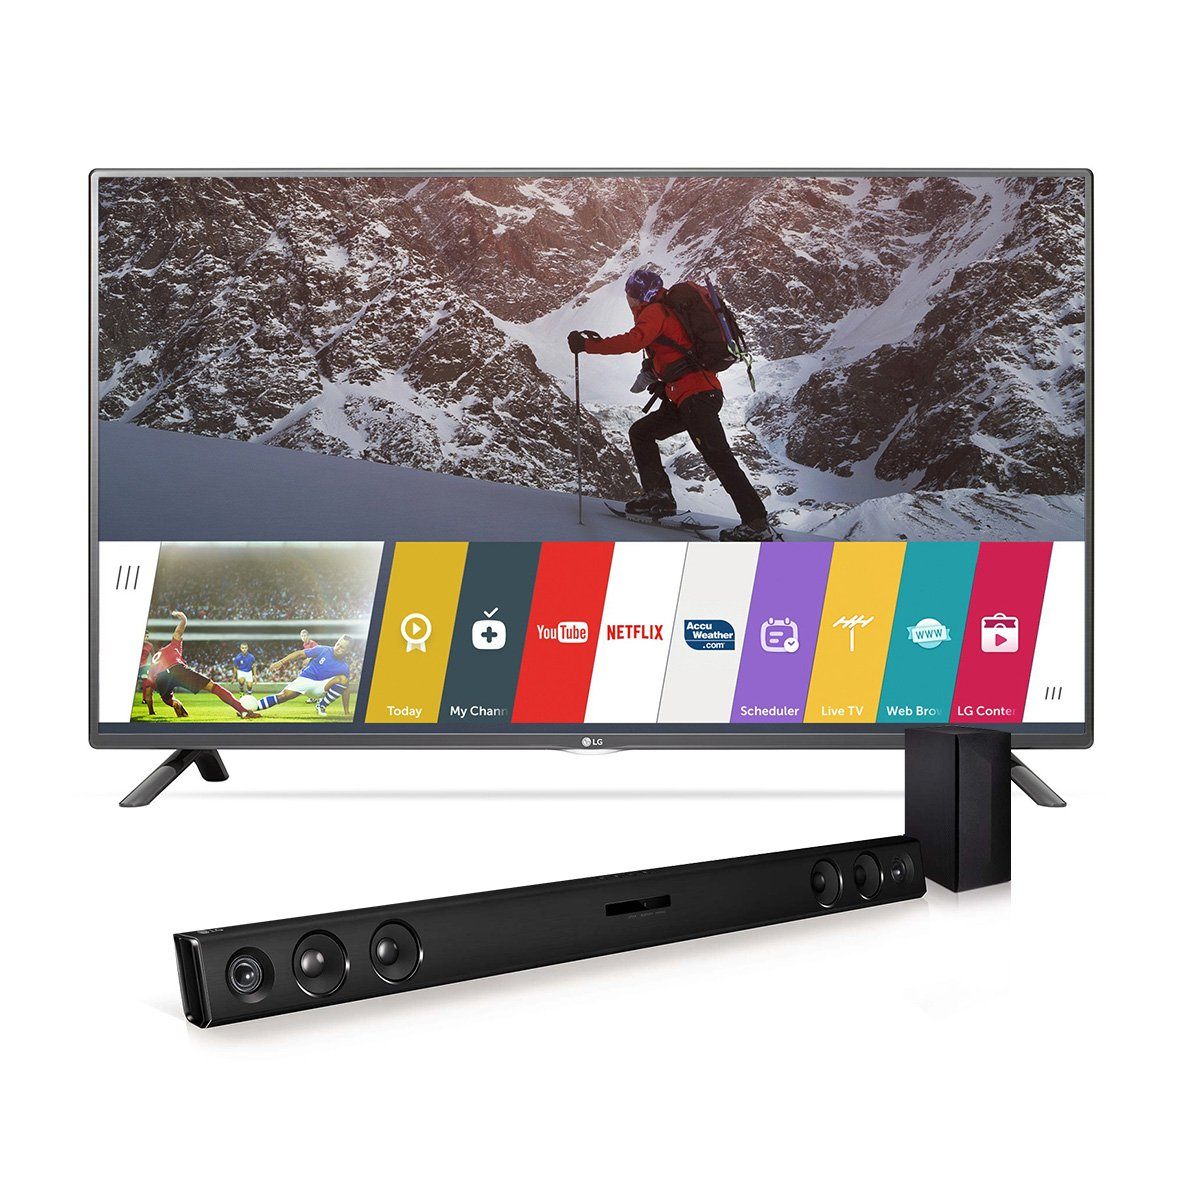 LG Electronics 43LF5900 43-Inch Smart LED TV with LAS454B Soundbar